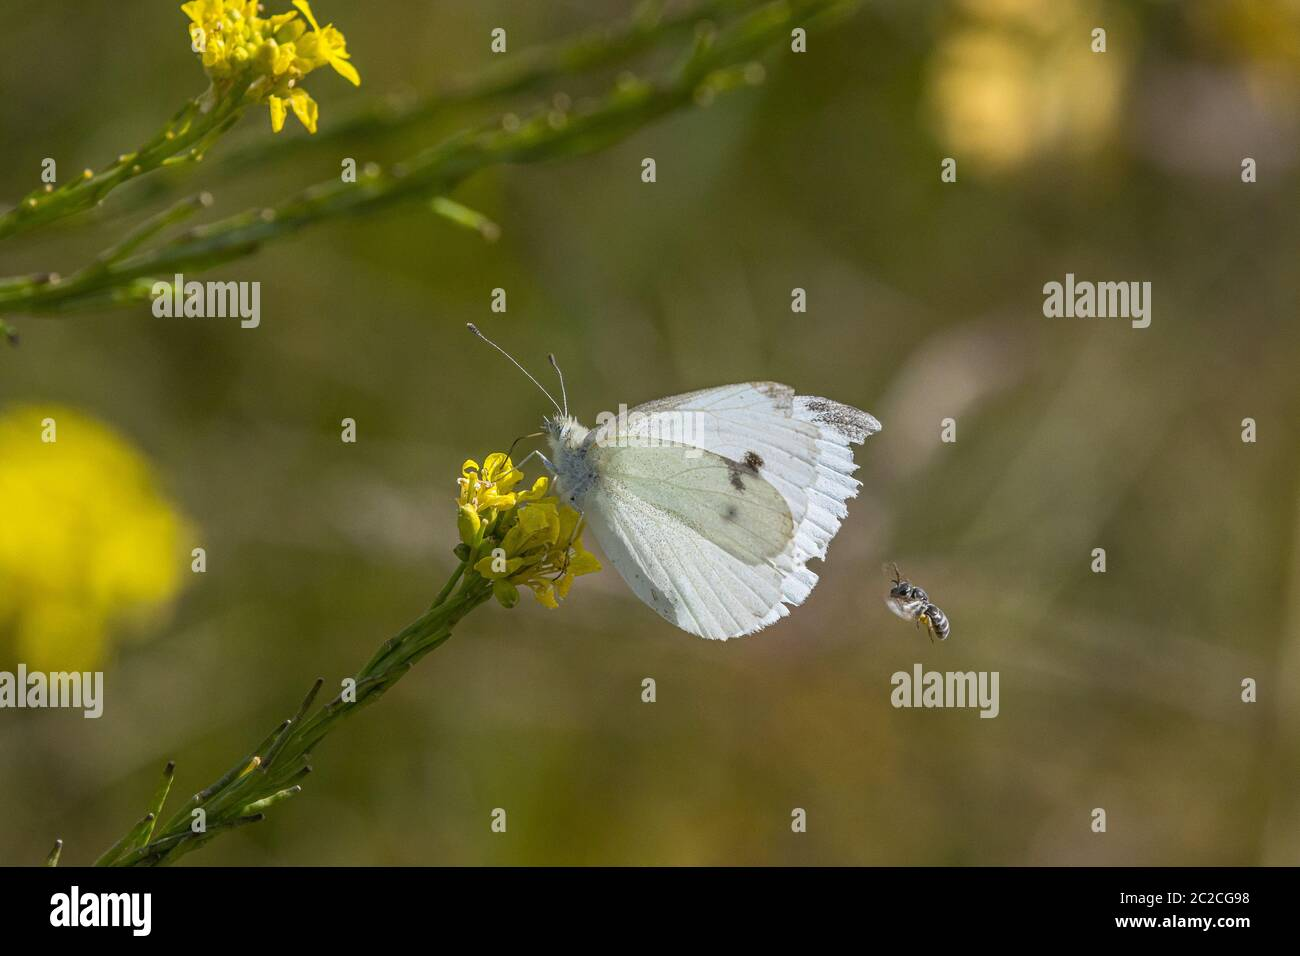 A Cabbage White Butterfly (Pieris rapae) the San Luis National Wildlife Refuge in the Central Valley of California USA Stock Photo